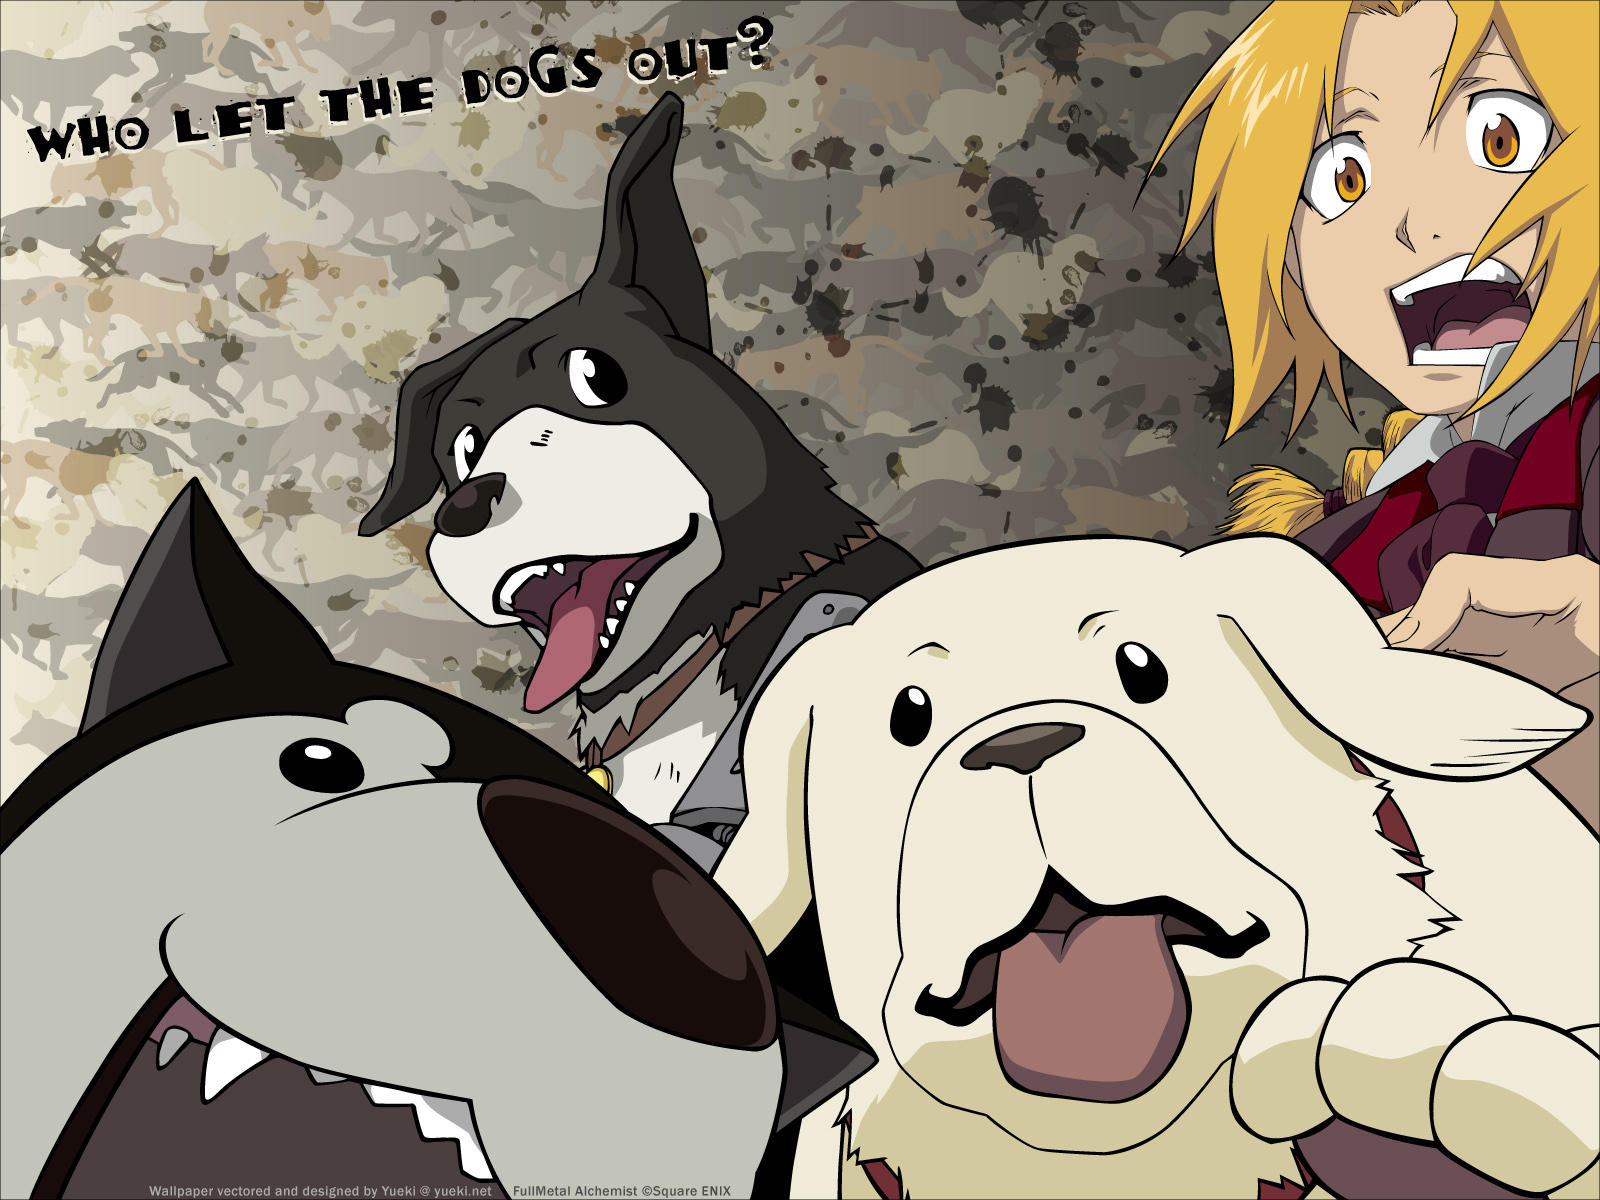 Who Let The Dogs Out? by yueki